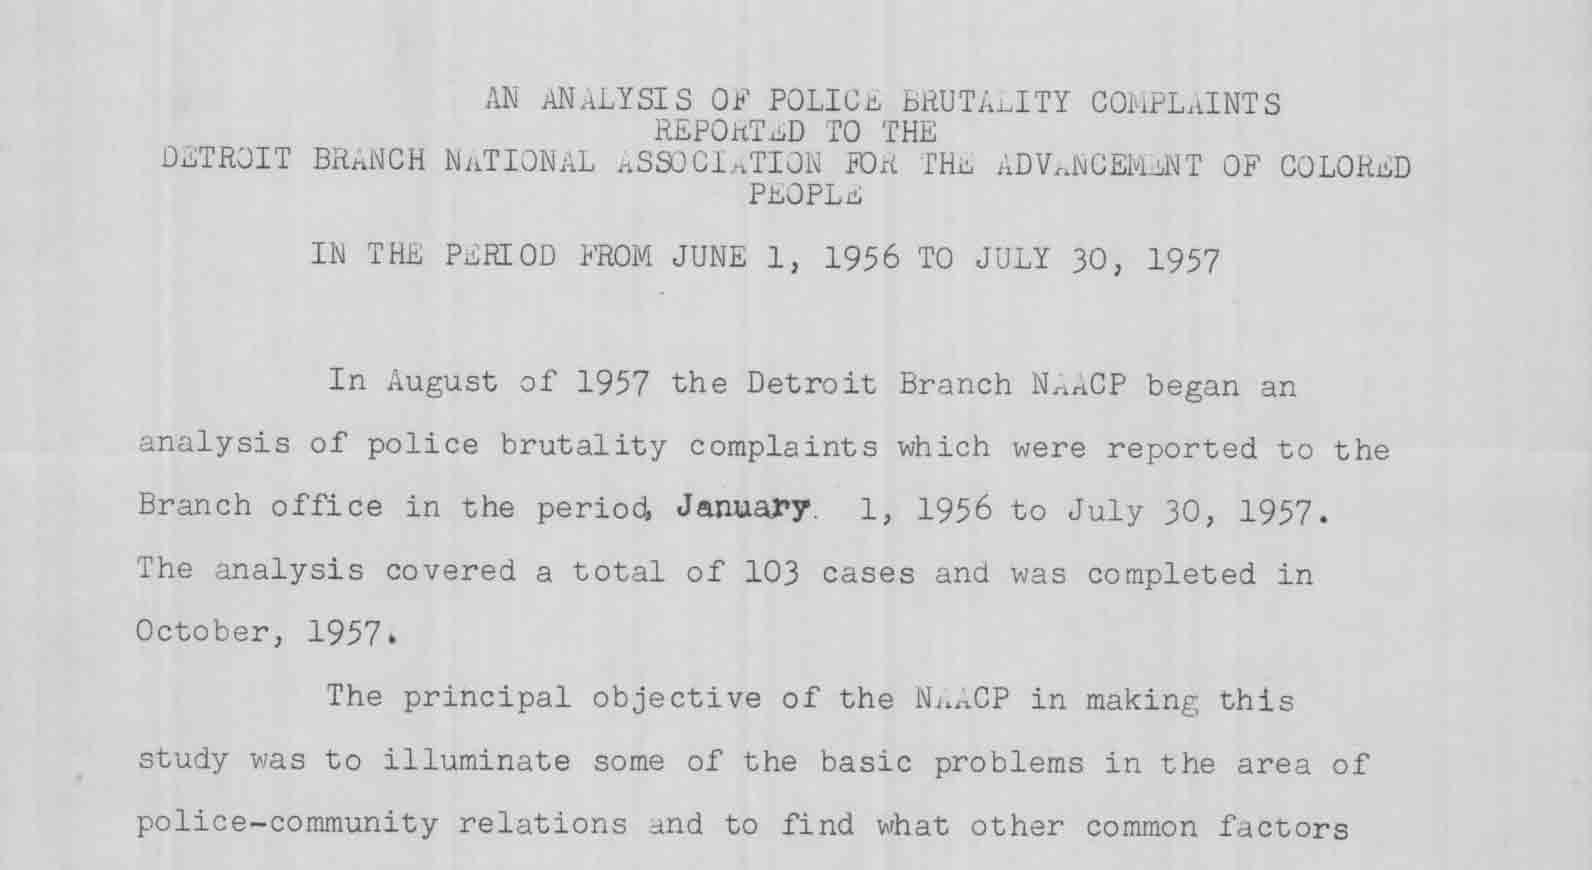 Analysis of Police Brutality Complaints